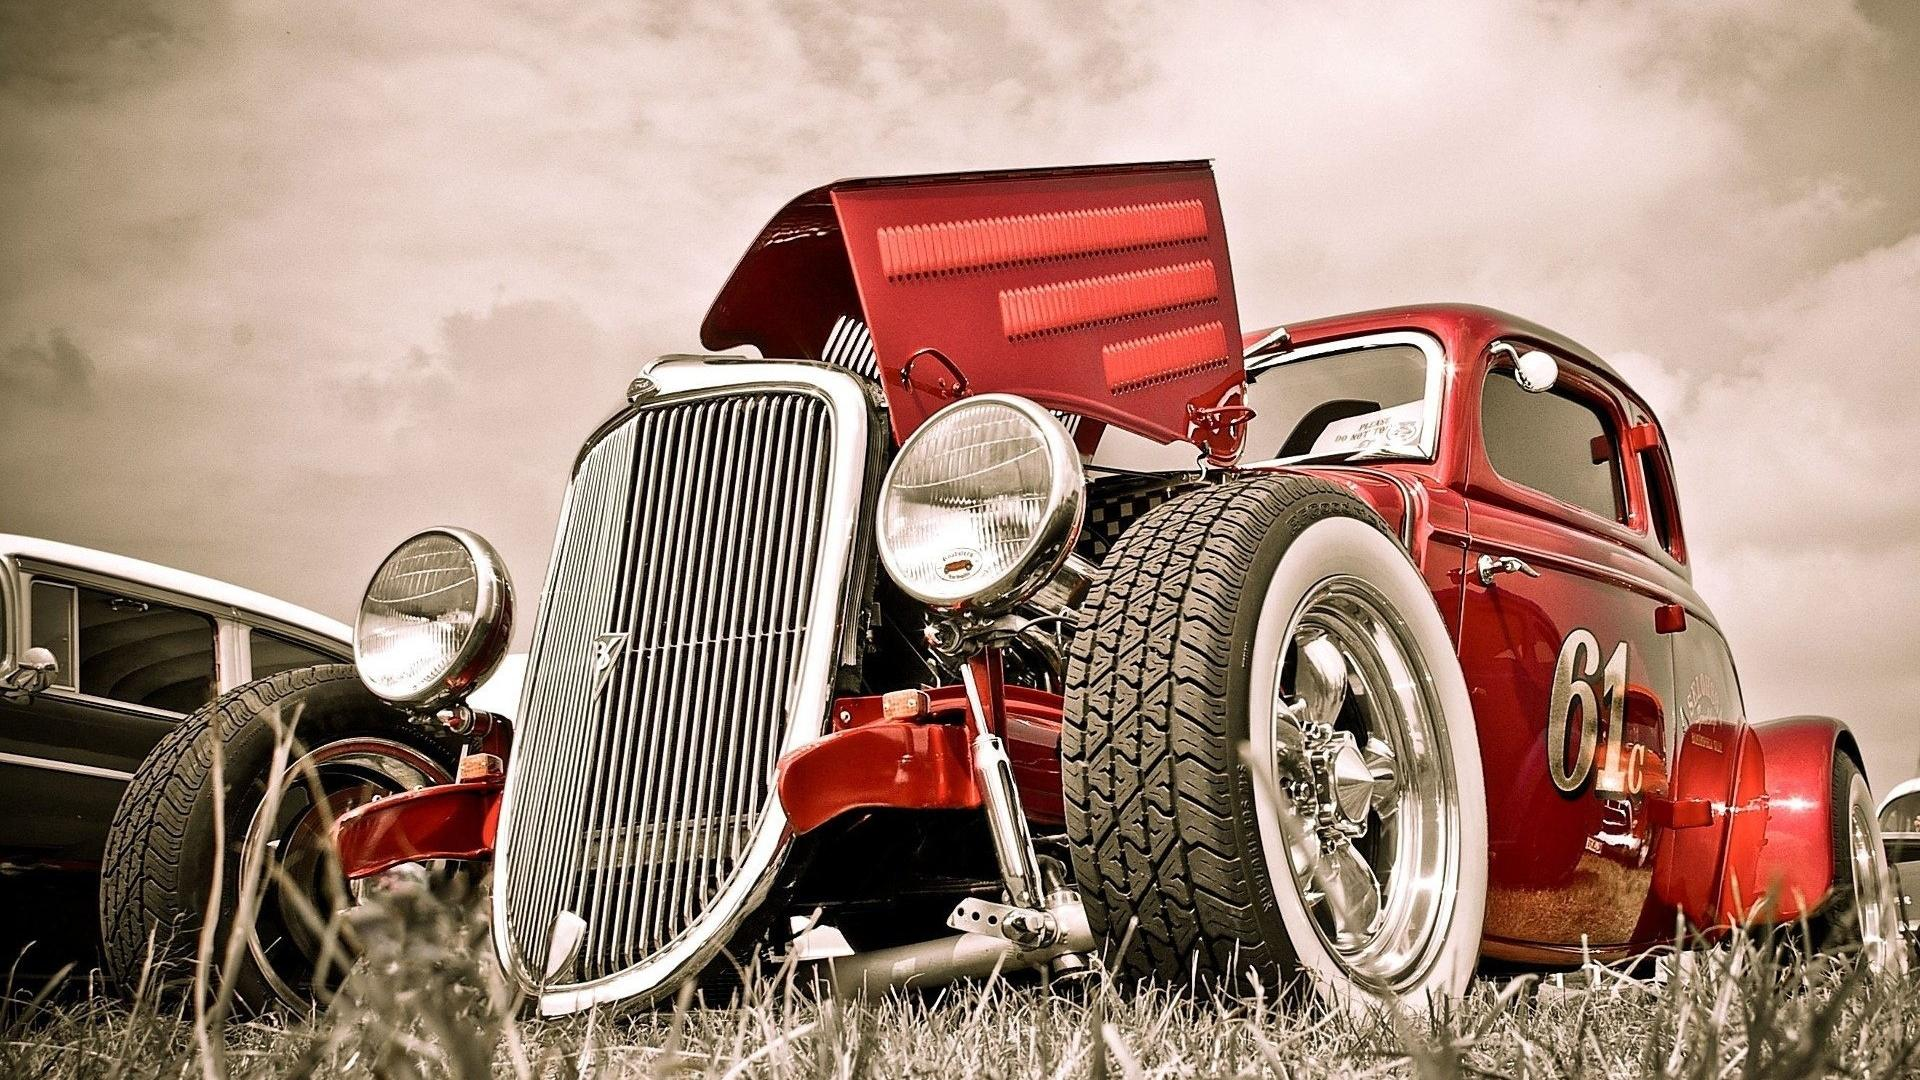 Hot rod, old car, автомобили, машины, авто 1920x1080